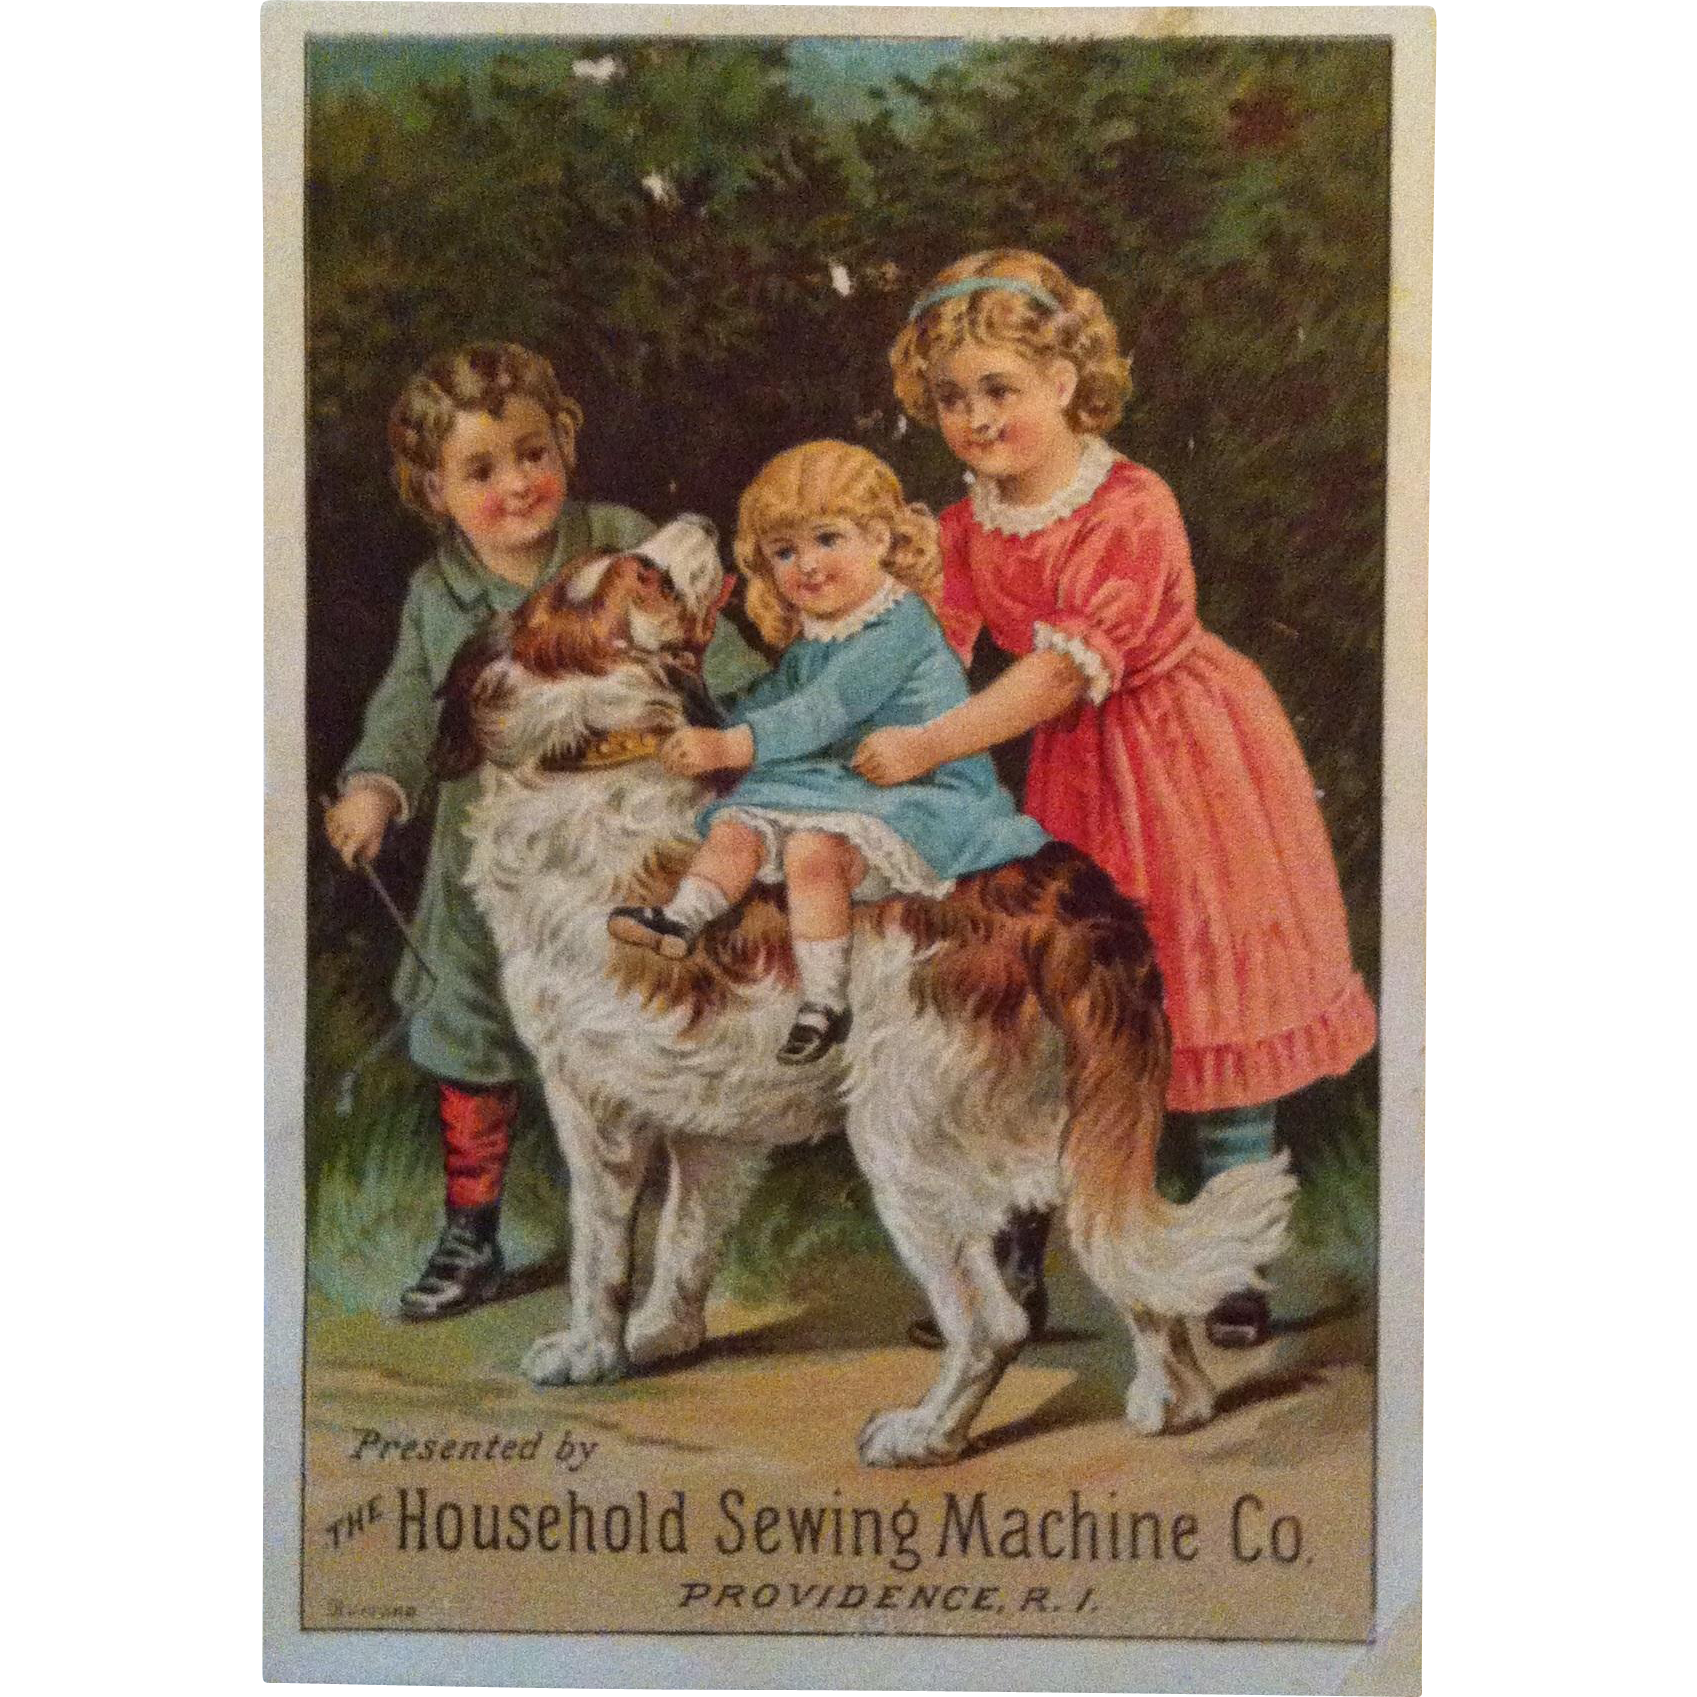 Household Sewing Machine Dog & Children Trade Card